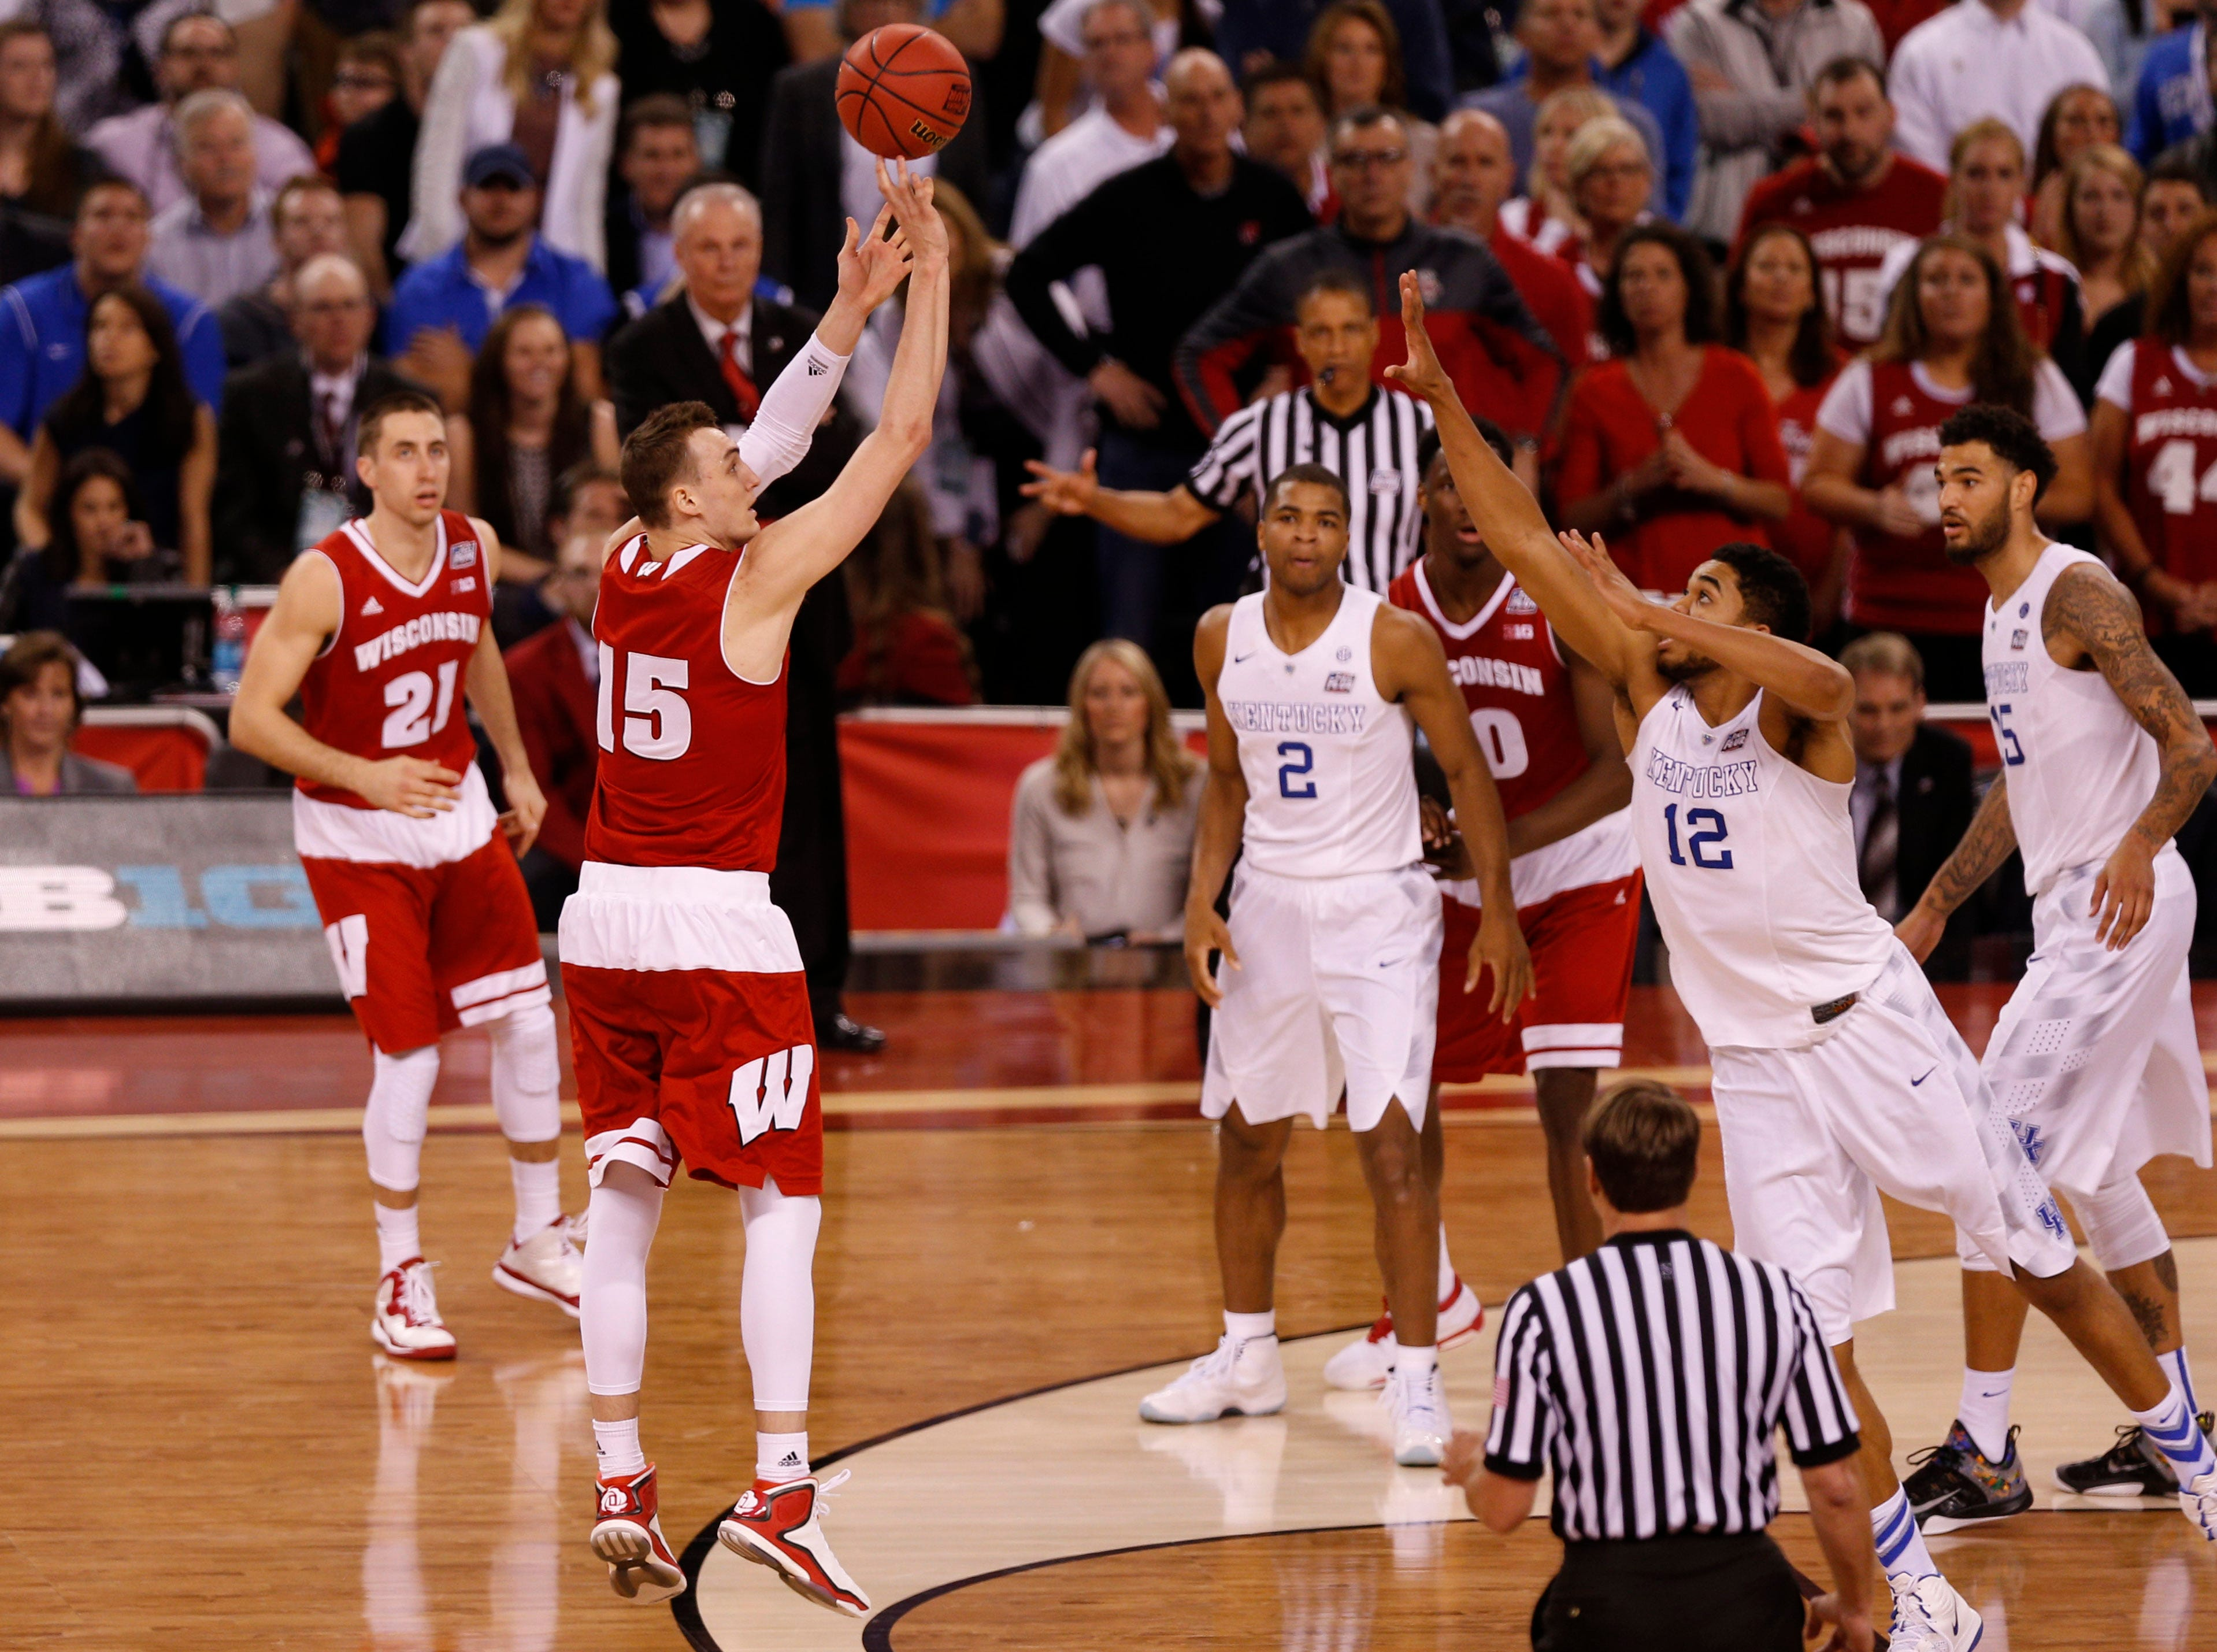 Wisconsin's Sam Dekker hits a 3-point shot to give the Badgers the lead late against Kentucky in the 2015 national semifinal.